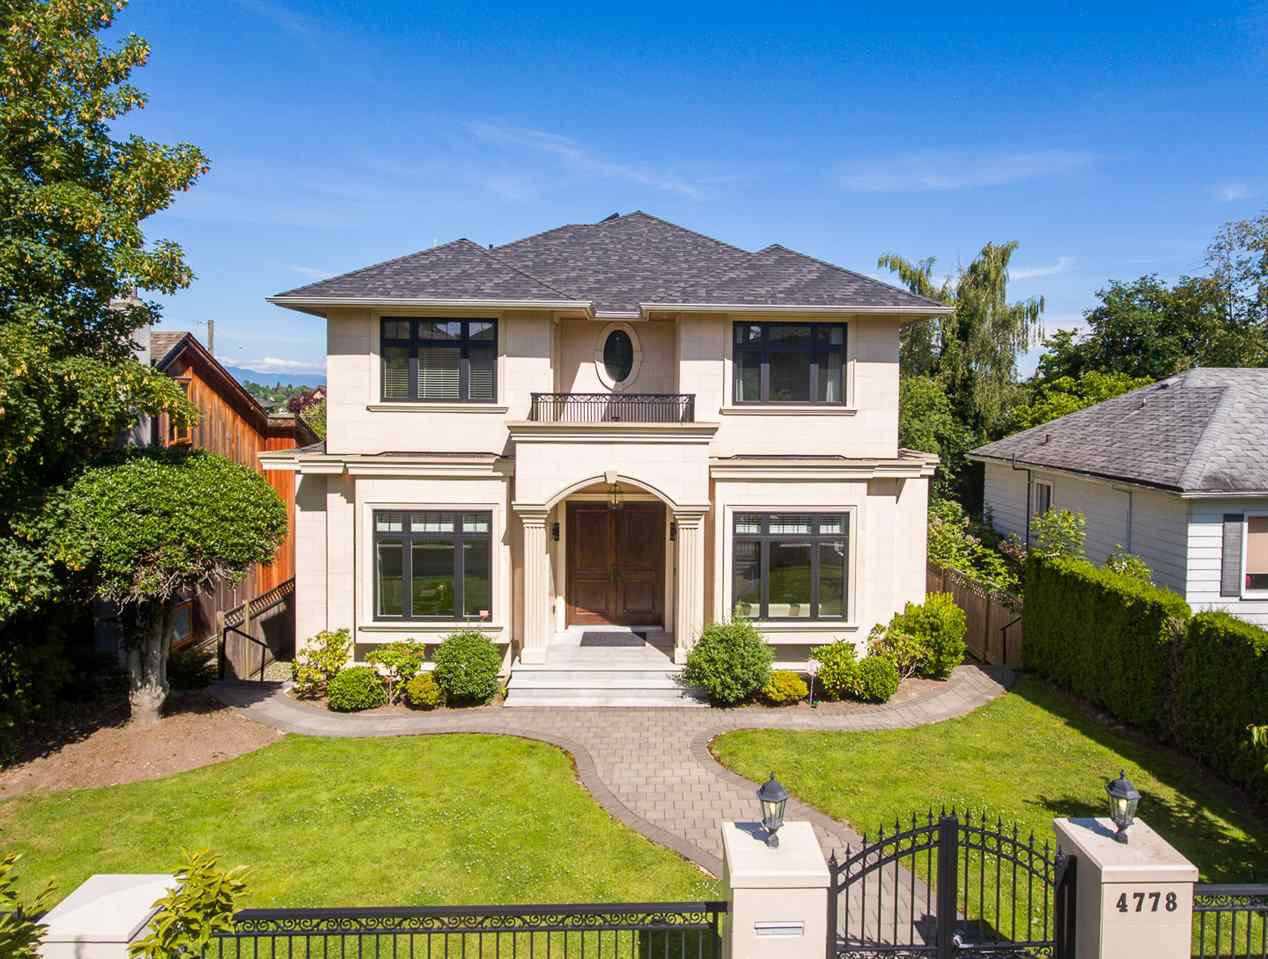 Main Photo: 4778 TRAFALGAR Street in Vancouver: MacKenzie Heights House for sale (Vancouver West)  : MLS®# R2466669